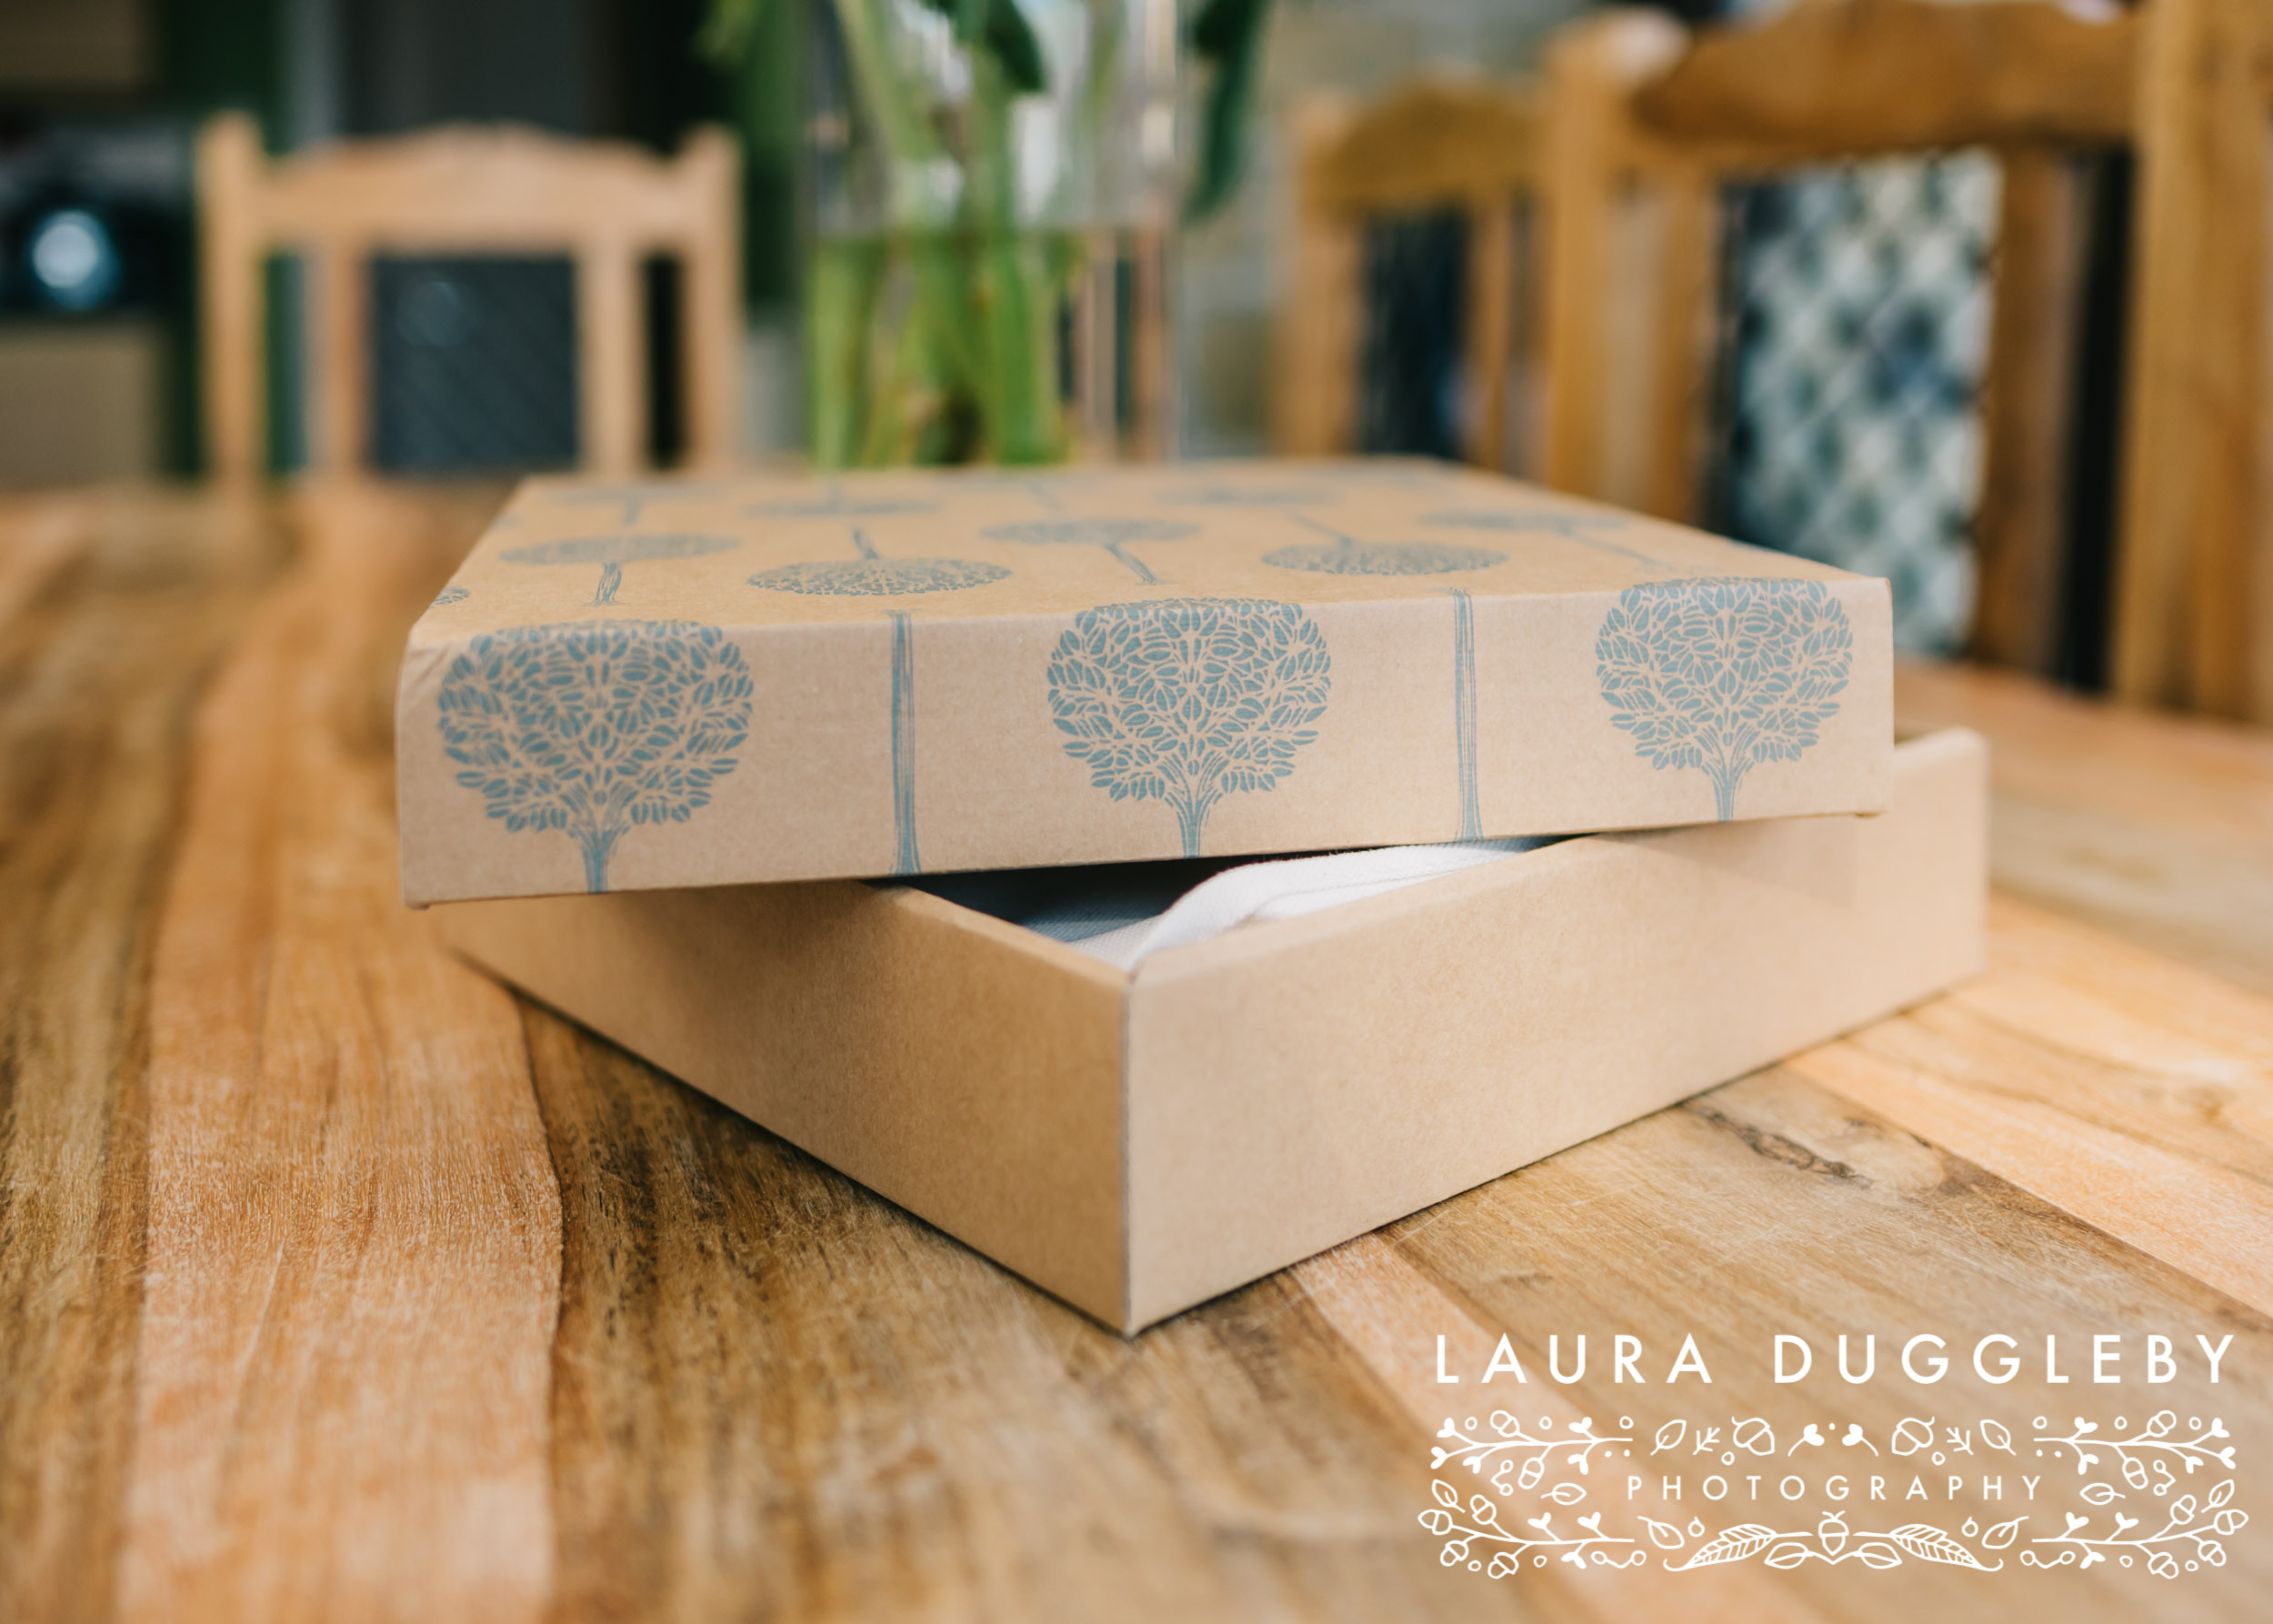 laura duggleby photography sample album-7.jpg